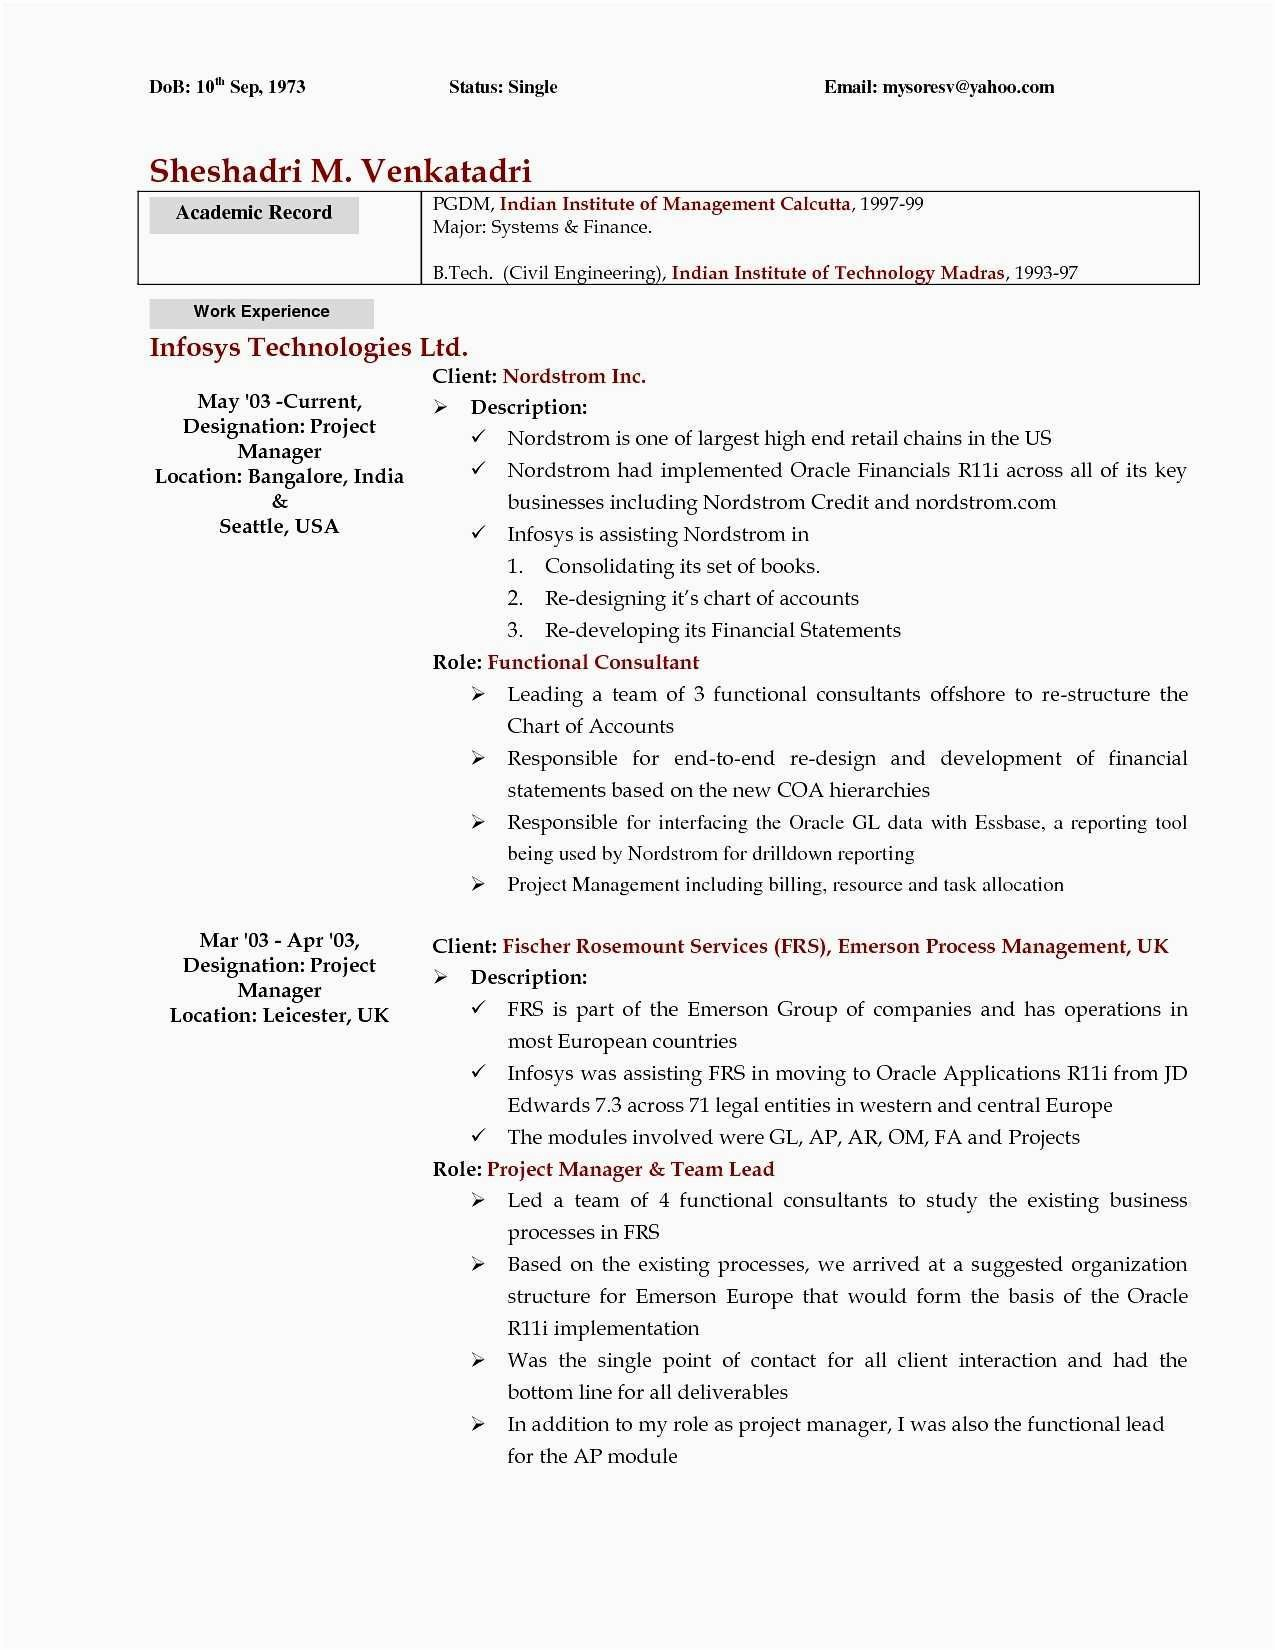 Home Health Nurse Resume - 38 Appealing Home Health Nurse Resume Sierra